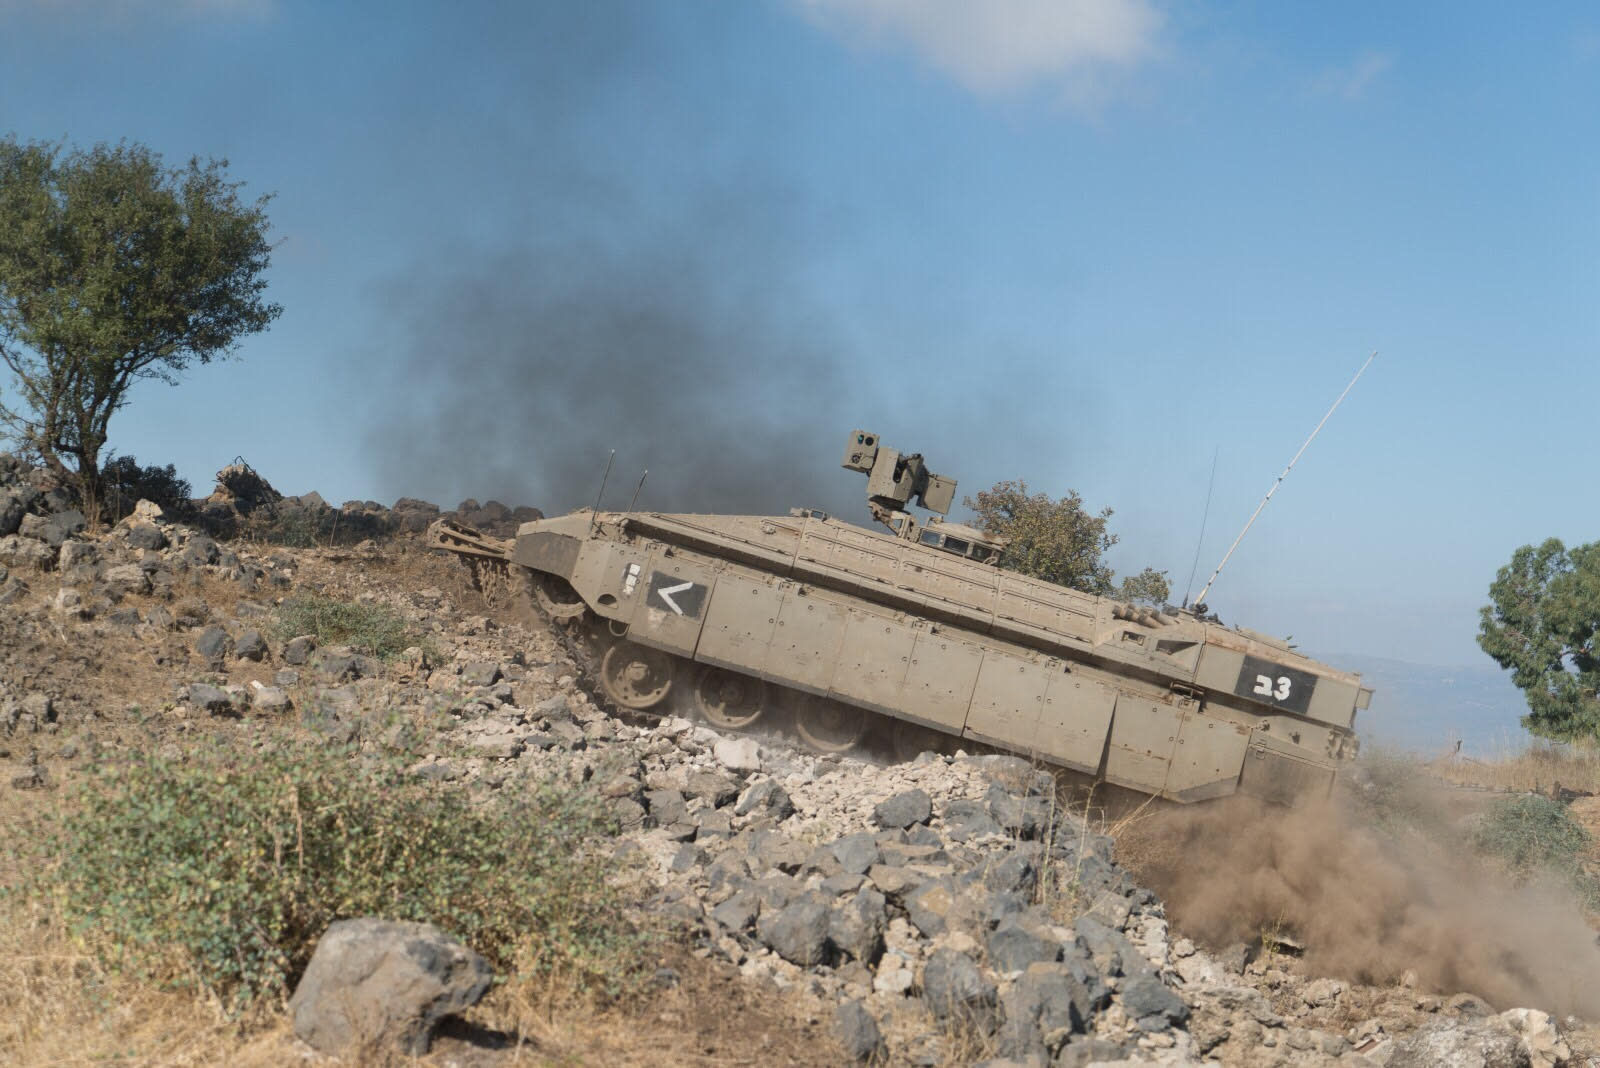 A Namer APC shows off its abilities at traversing steep terrain (IDF Spokesperson't Unit)